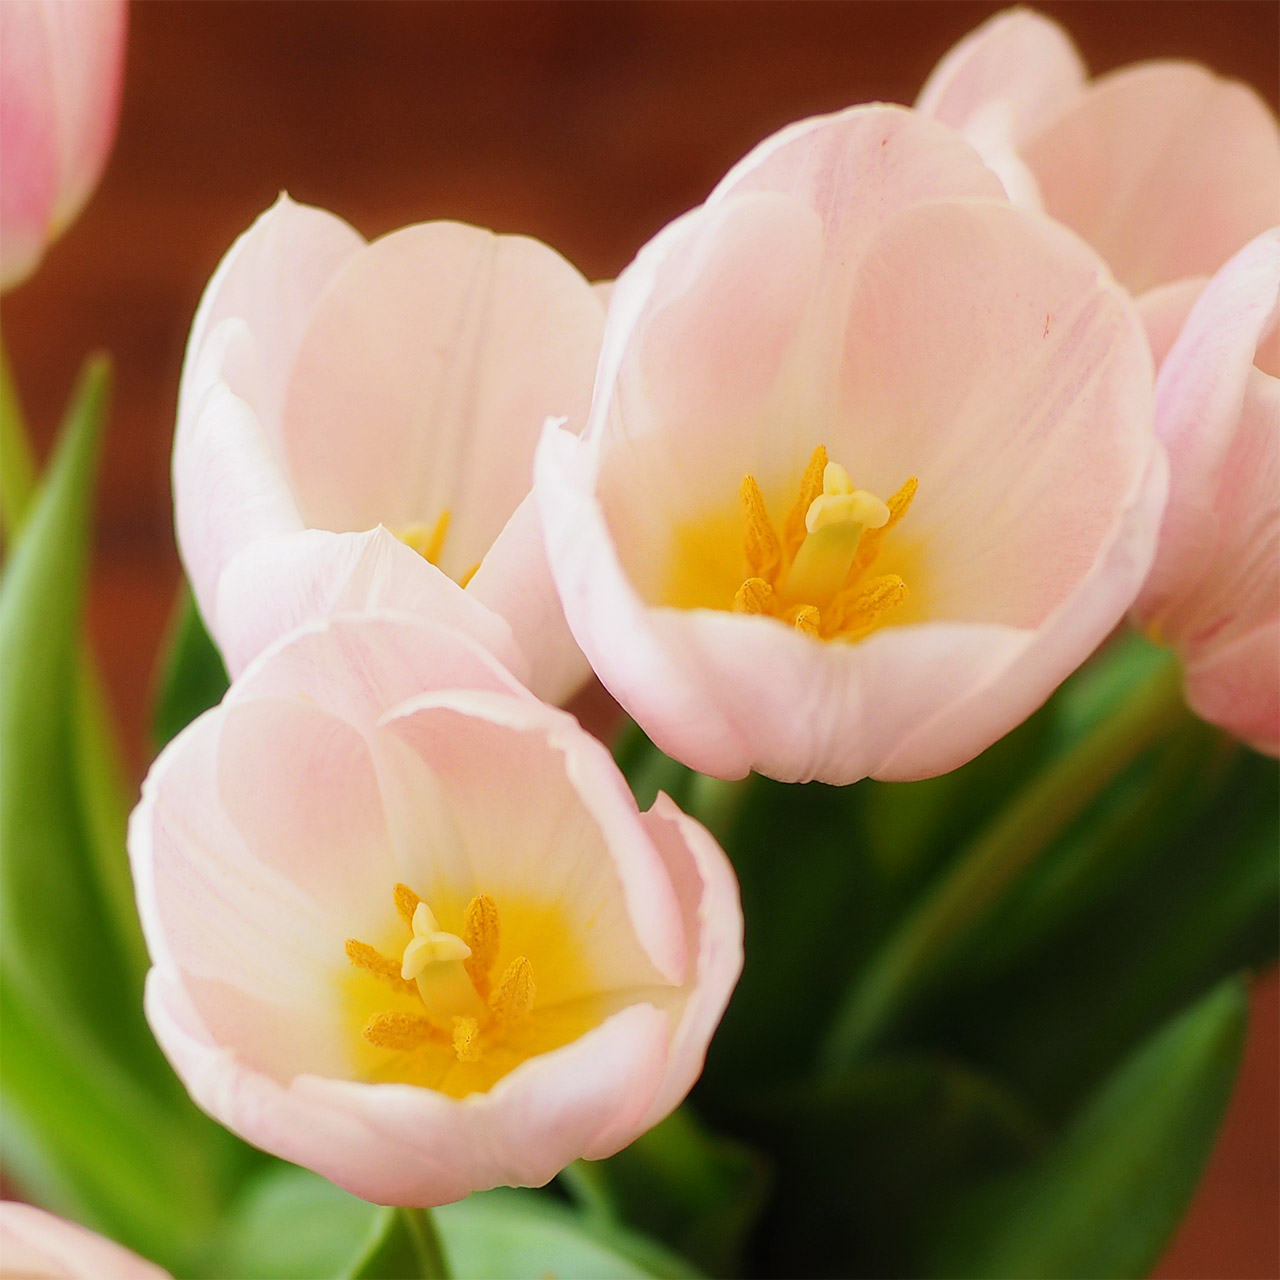 Close up of tulips